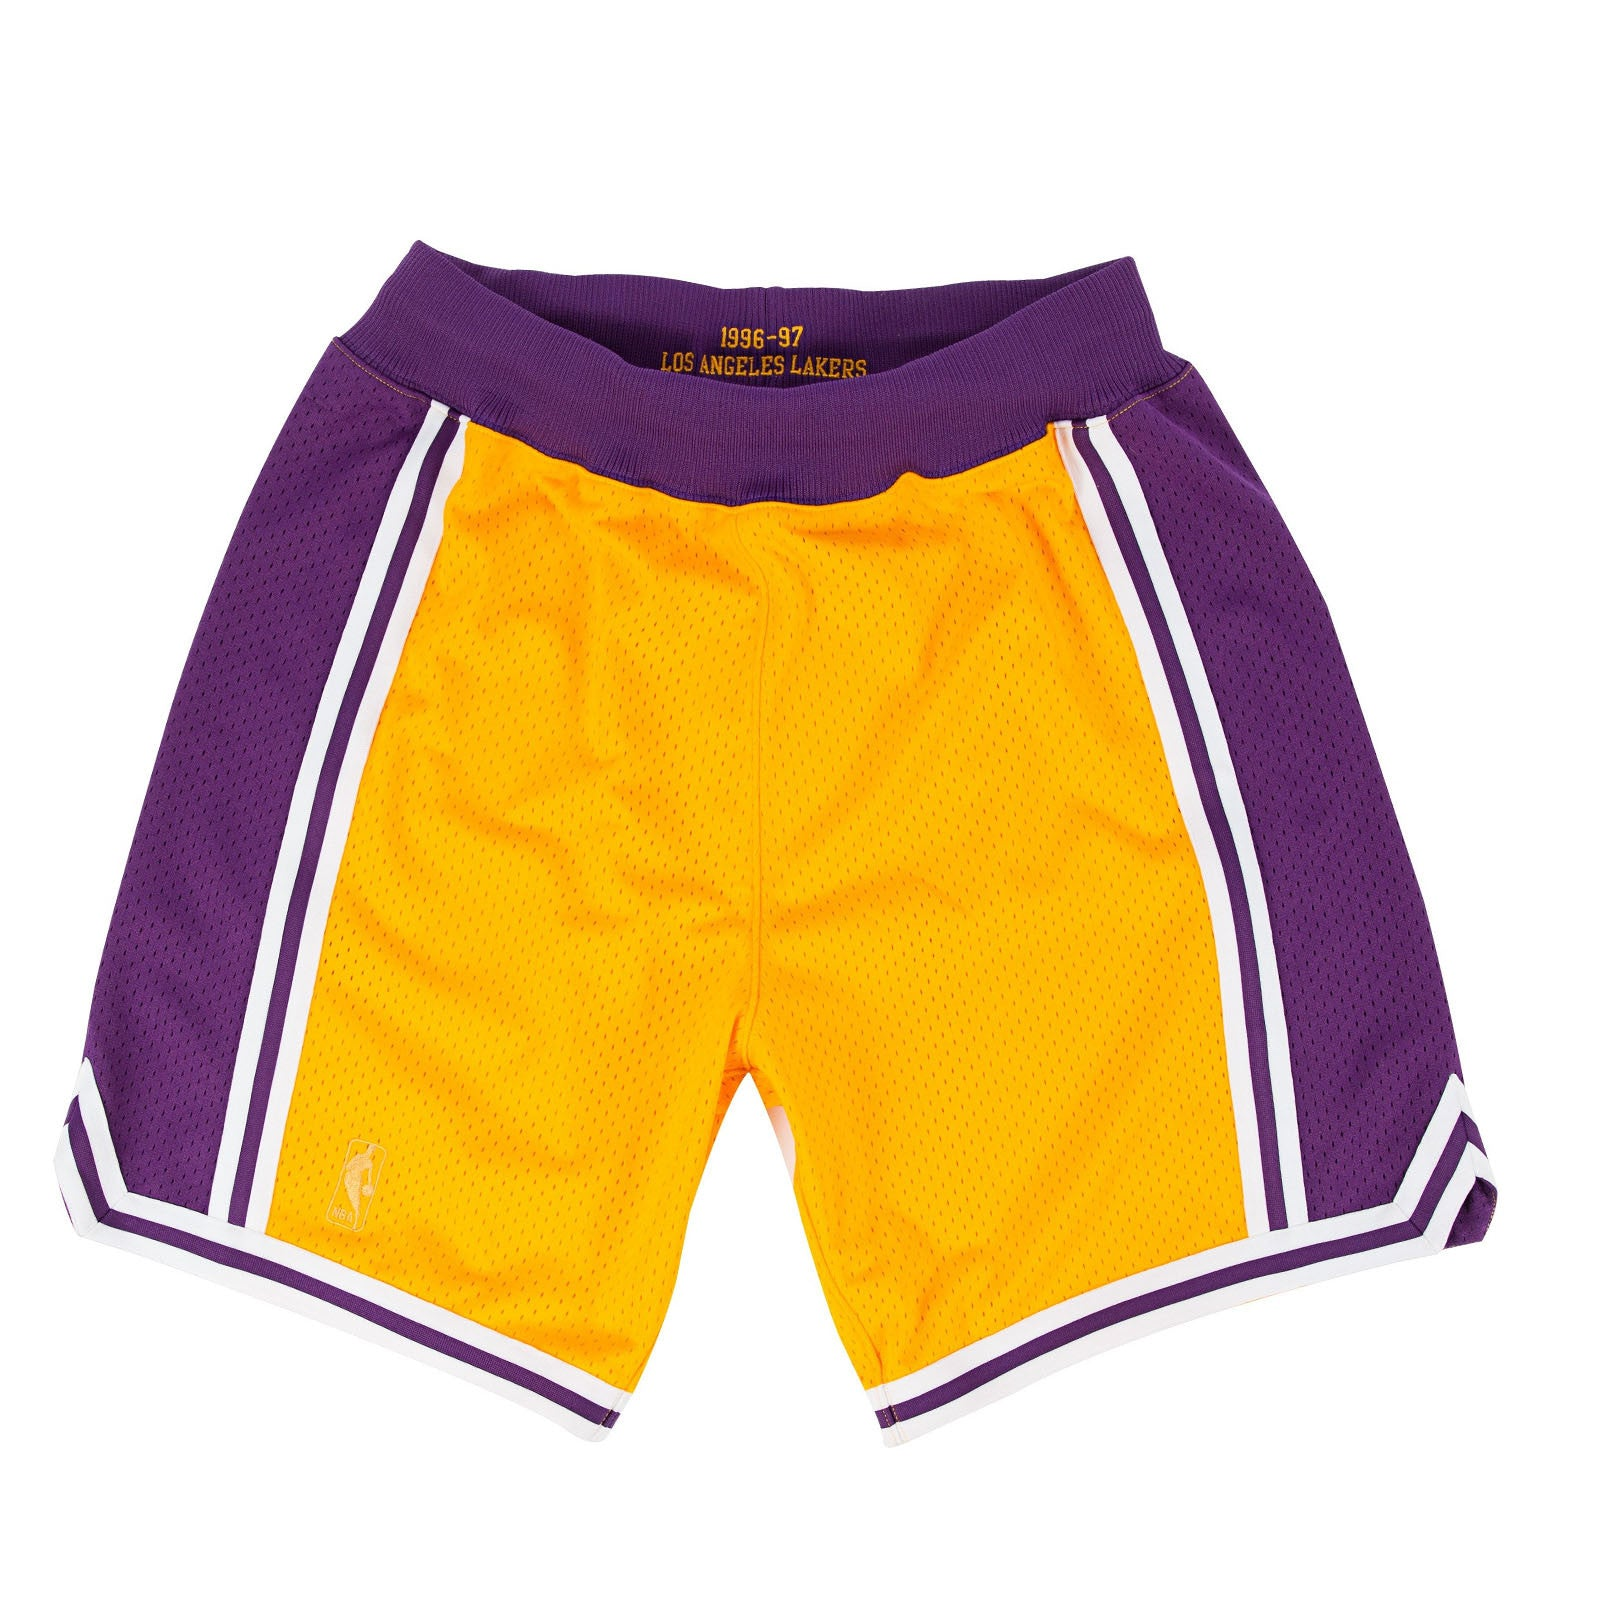 54aca0282061c Mitchell & Ness HWC Los Angeles Lakers NBA Authentic Shorts